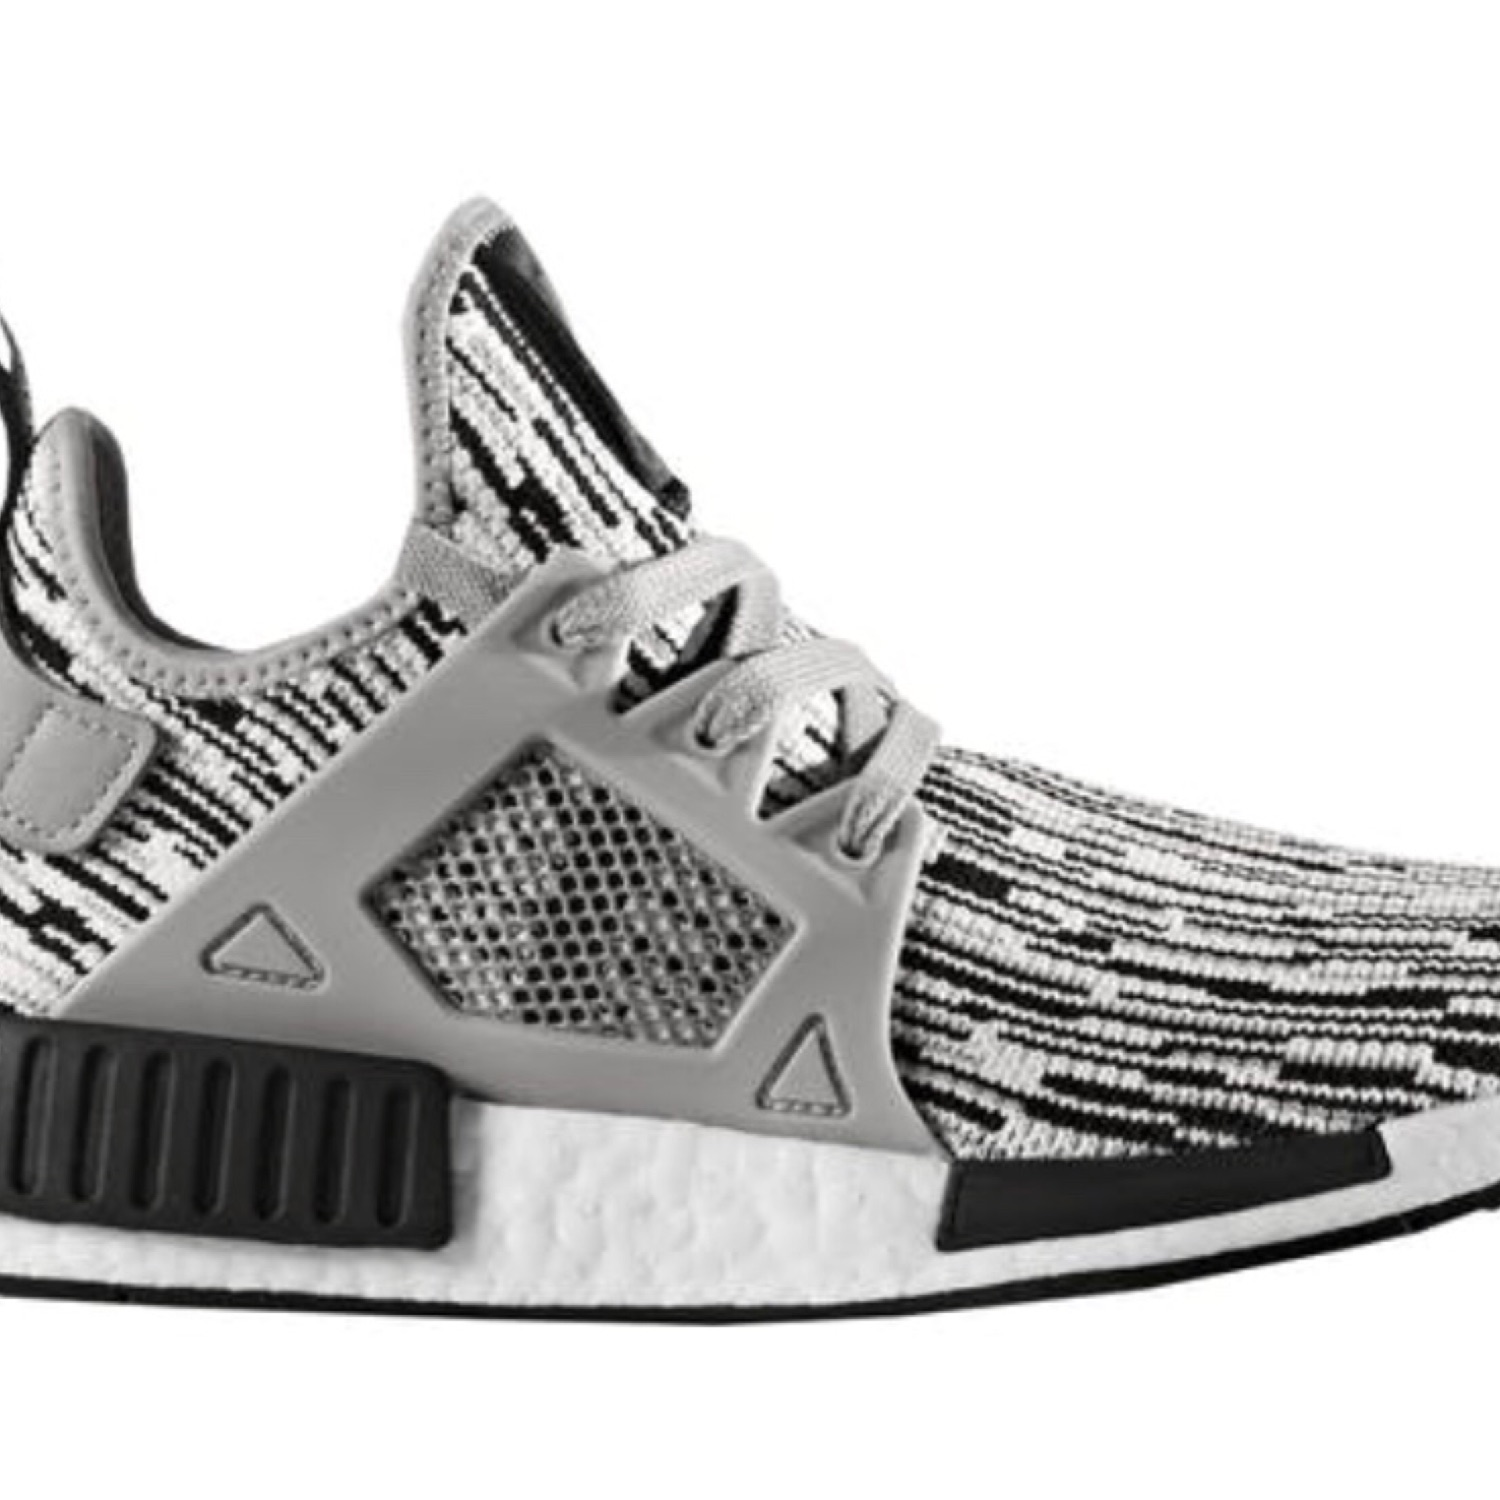 BUY Adidas NMD XR1 Olive Duck Camo for sale ShoeBox.GQ